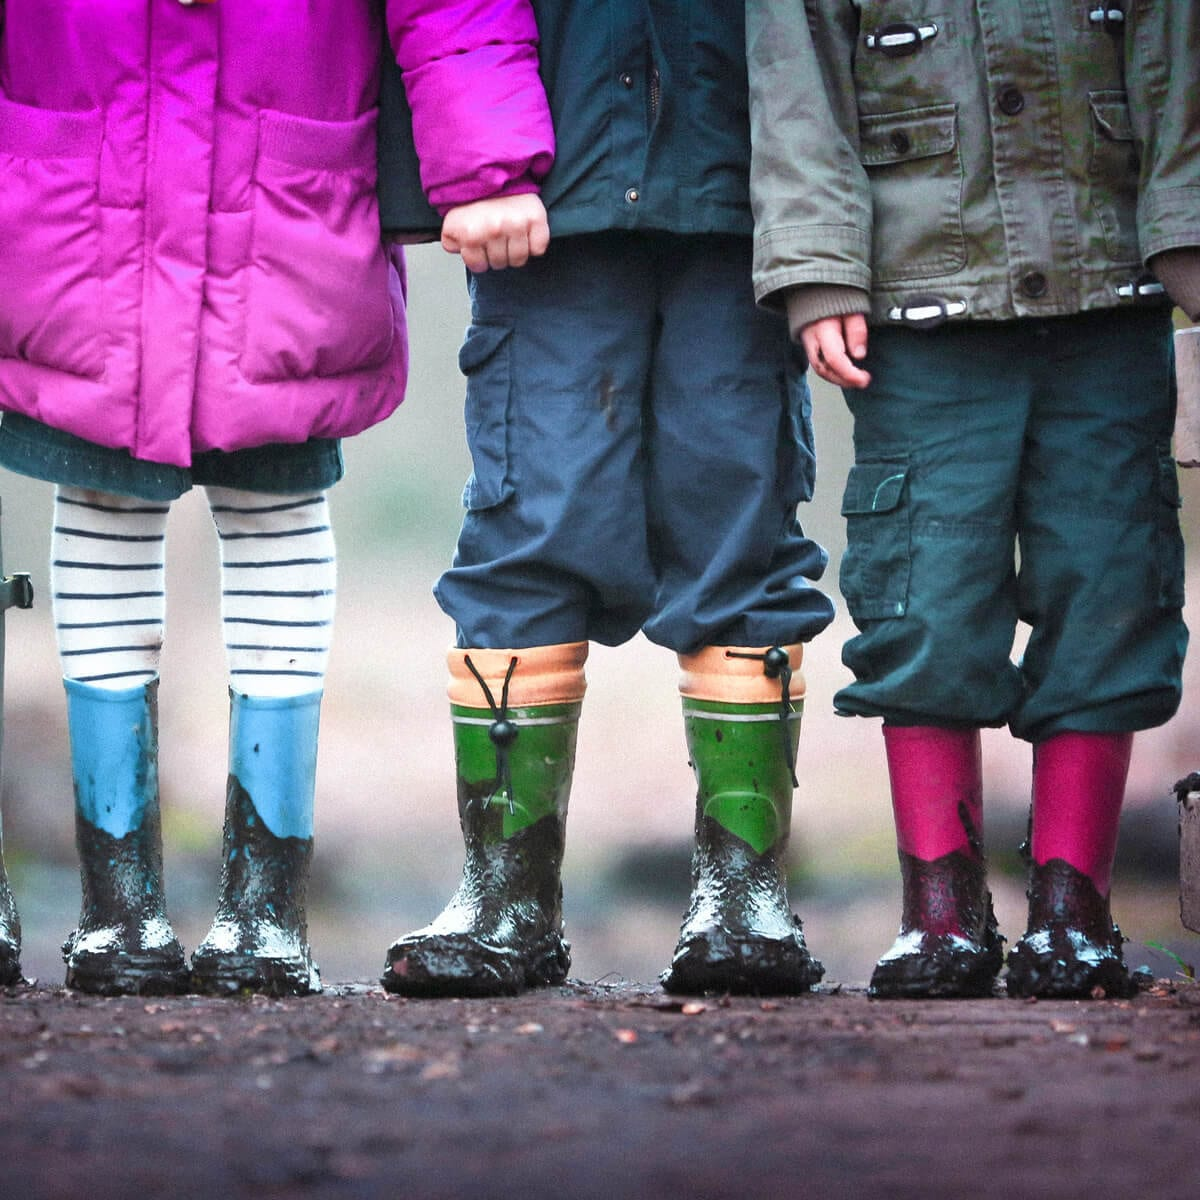 4 children wearing rainboots